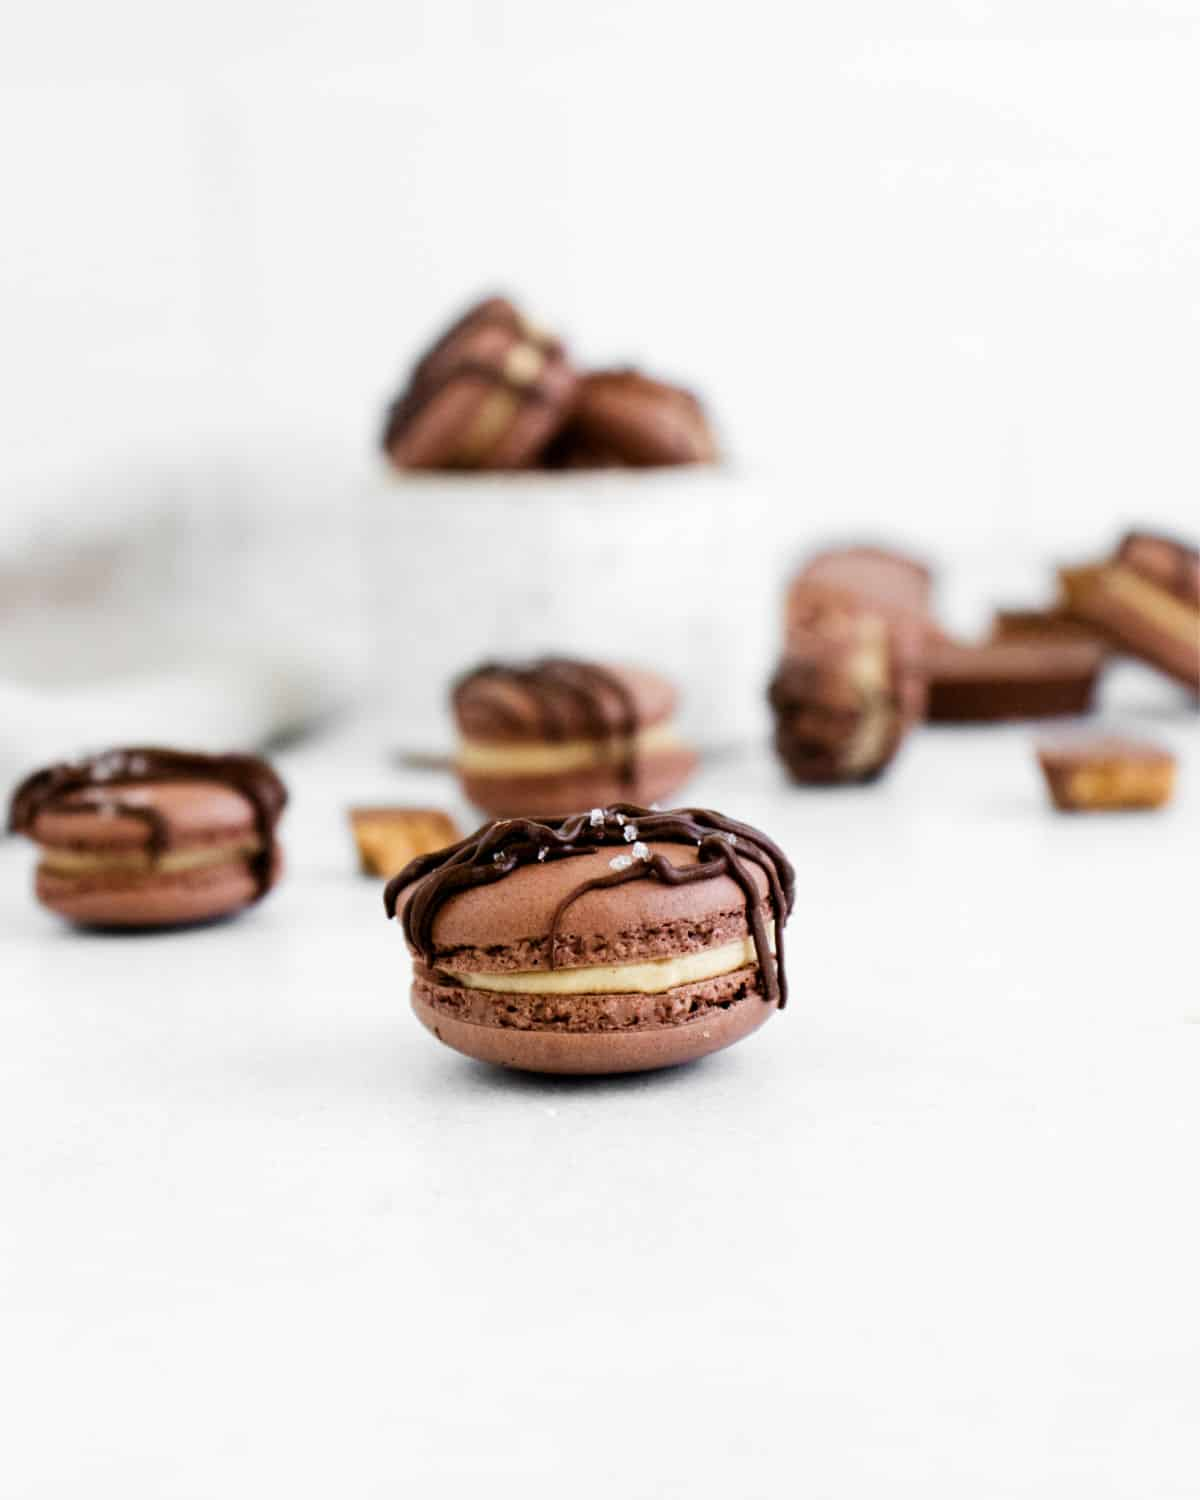 Chocolate macarons with peanut butter filling and chocolate drizzle.